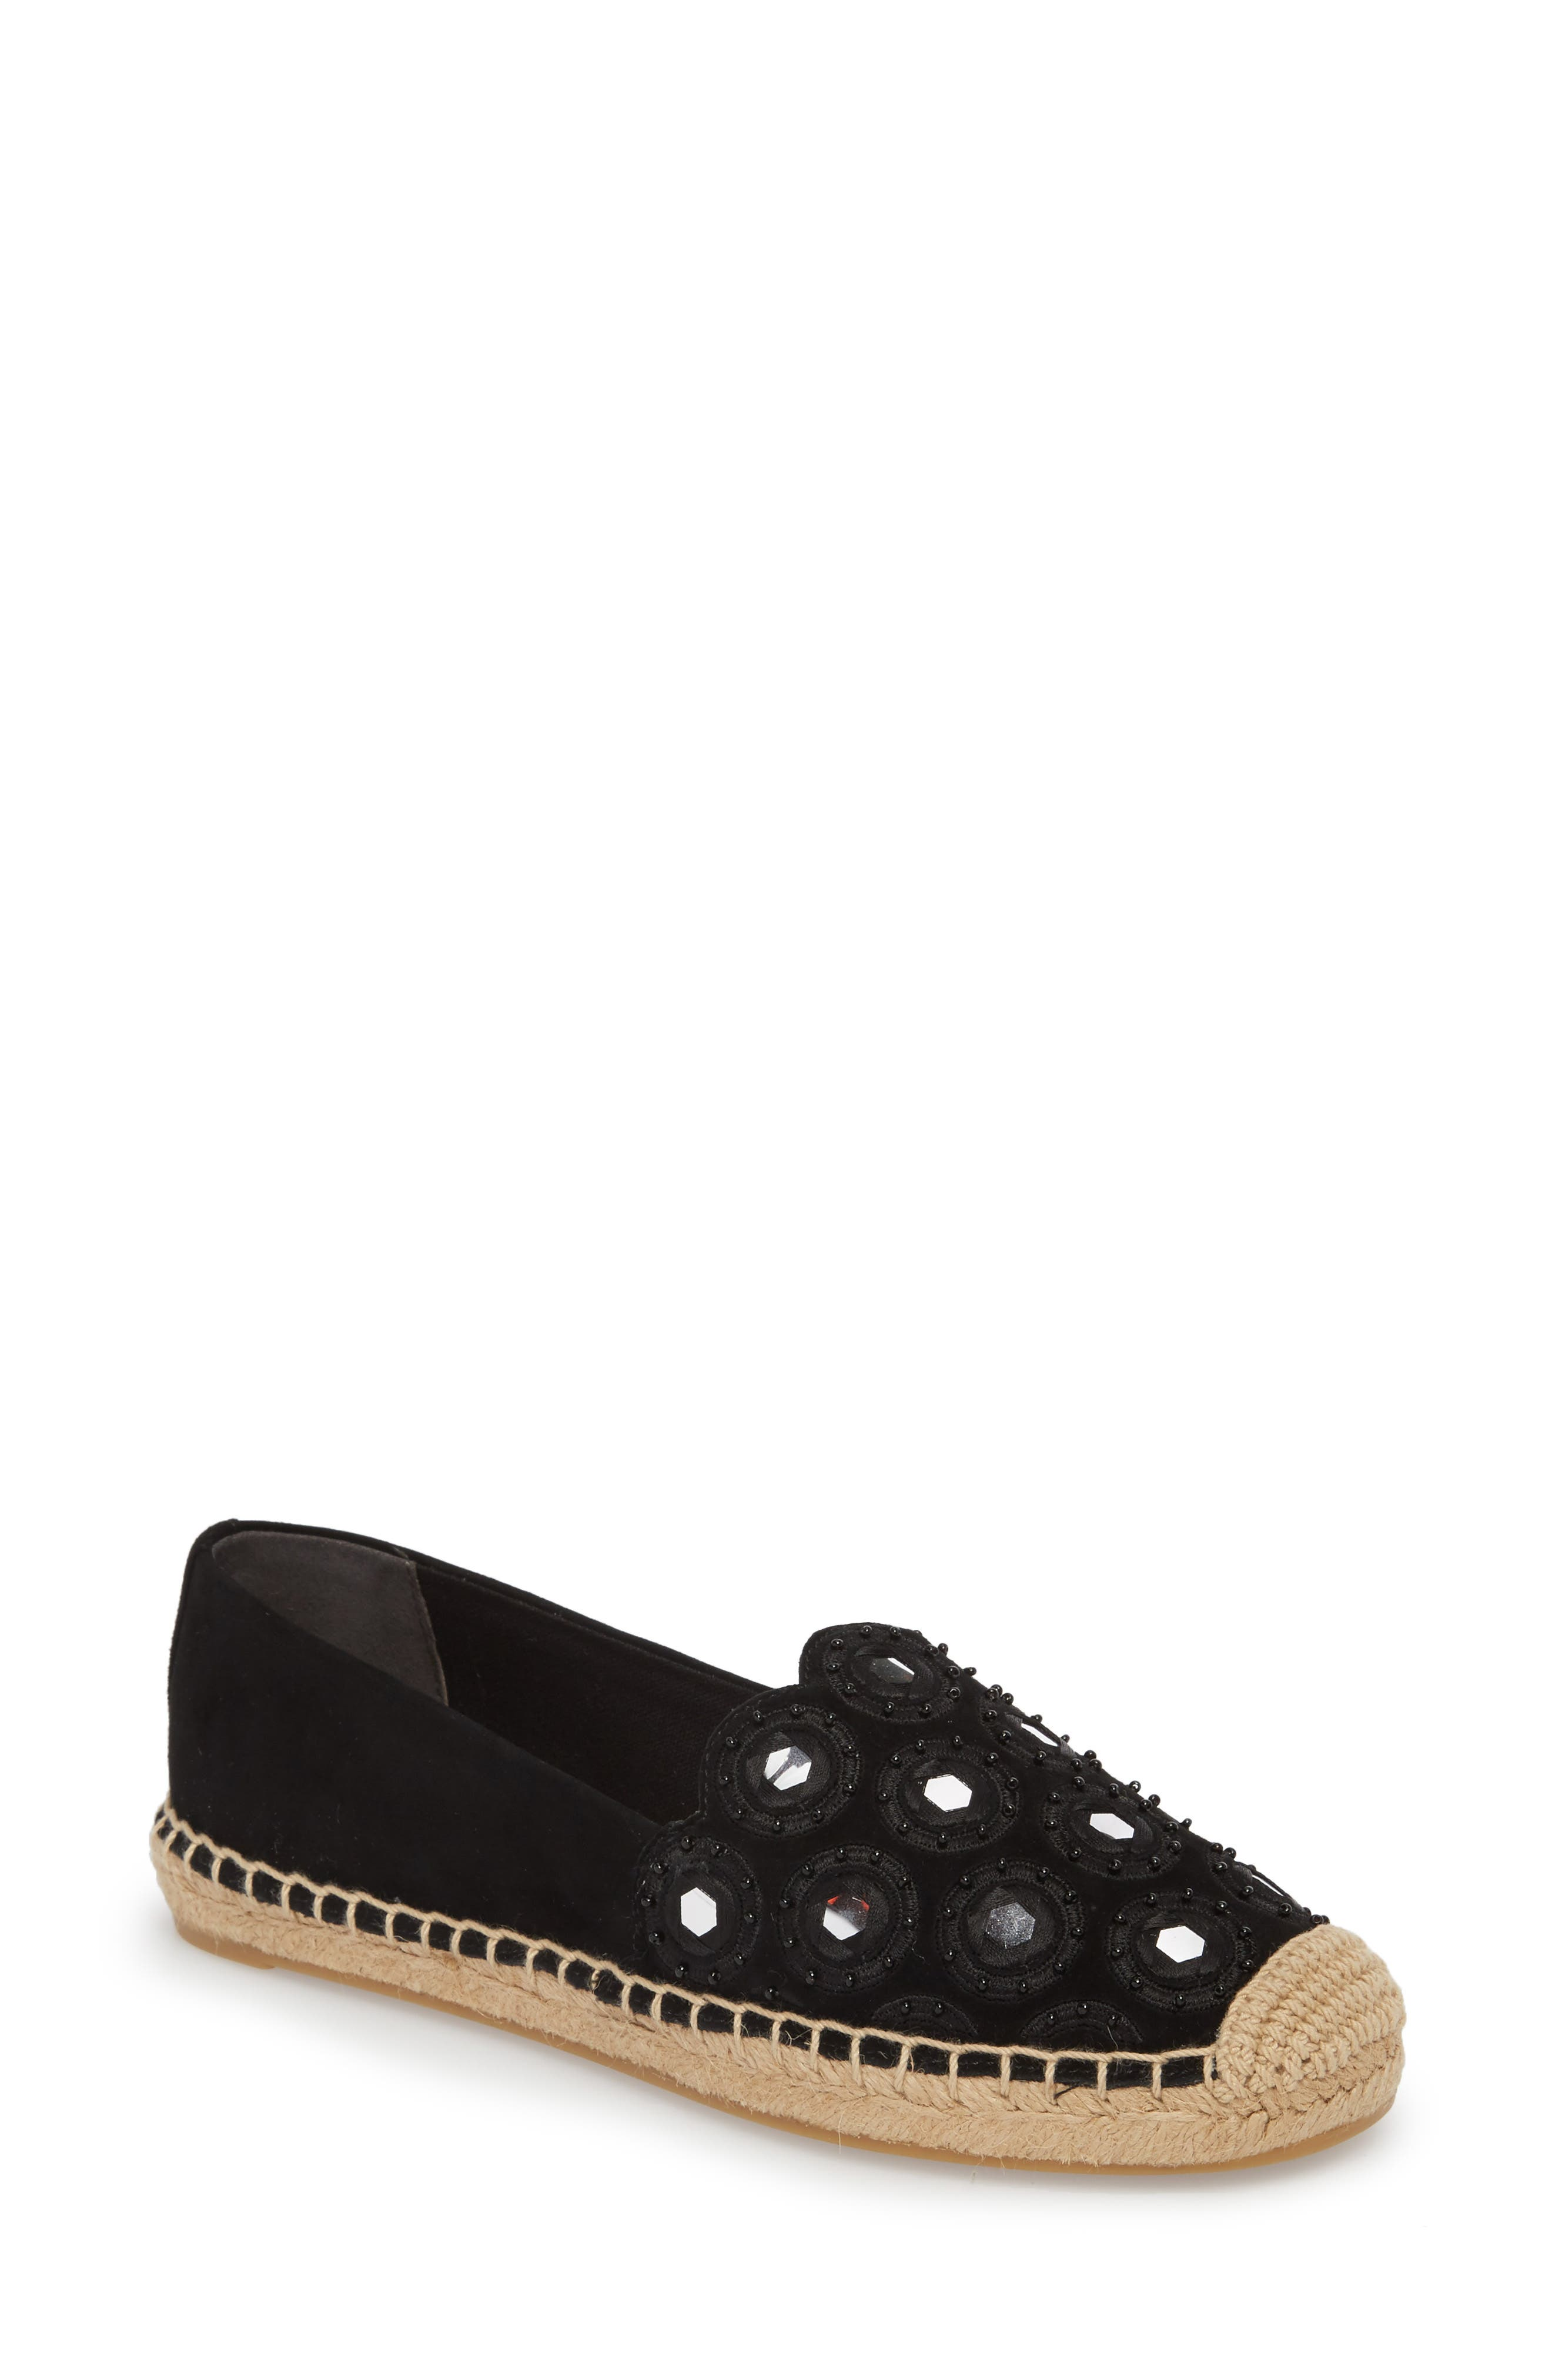 Alternate Image 1 Selected - Tory Burch Yasmin Embellished Espadrille (Women)